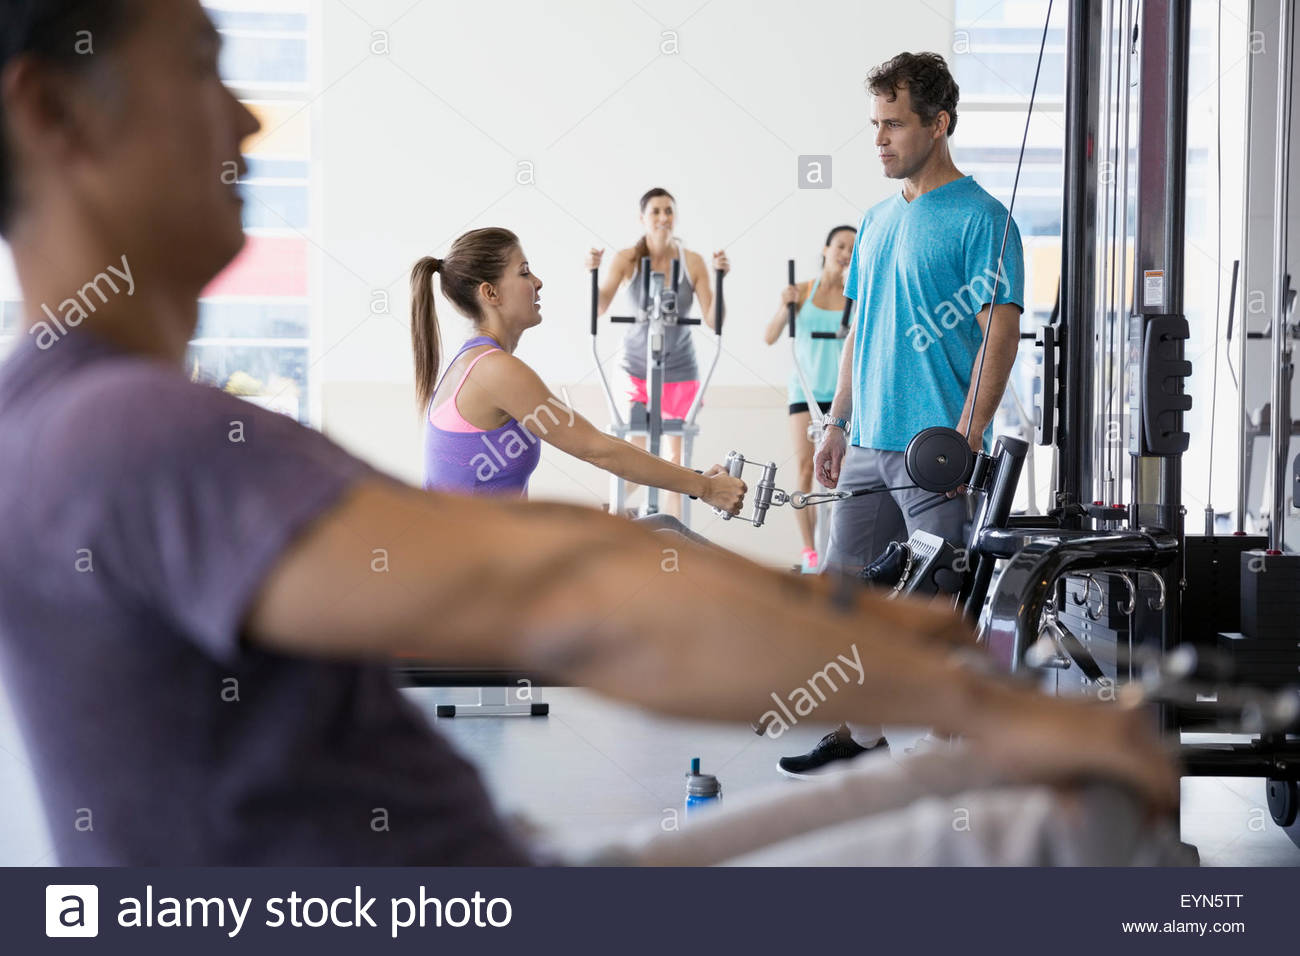 People working out at gym - Stock Image